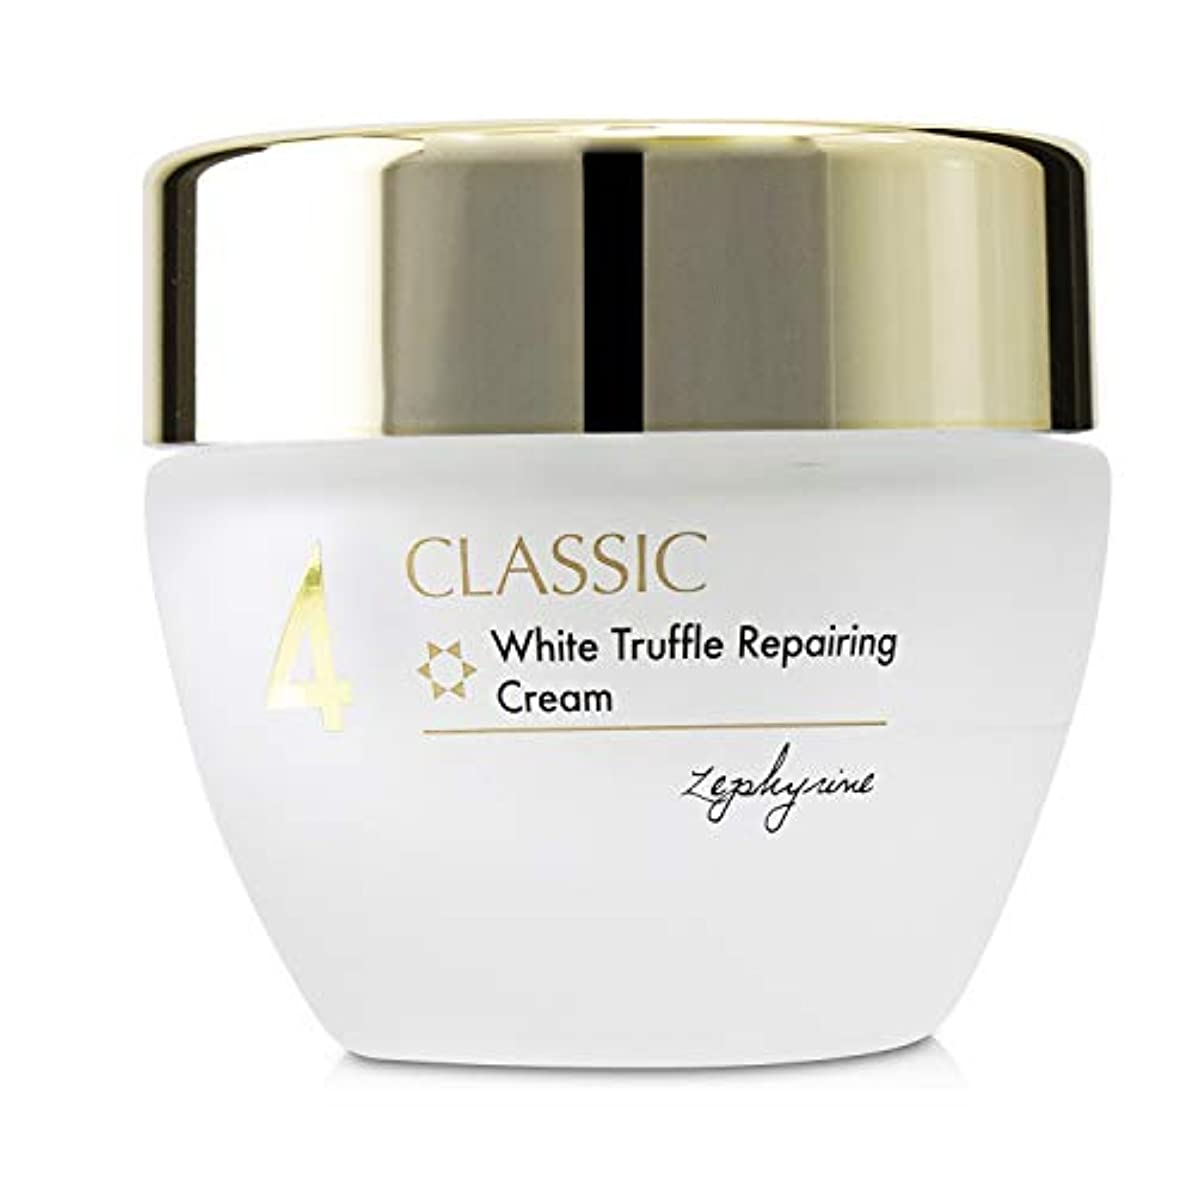 ポルティコ闘争縁Zephyrine White Truffle Repairing Cream 50ml/1.7oz並行輸入品